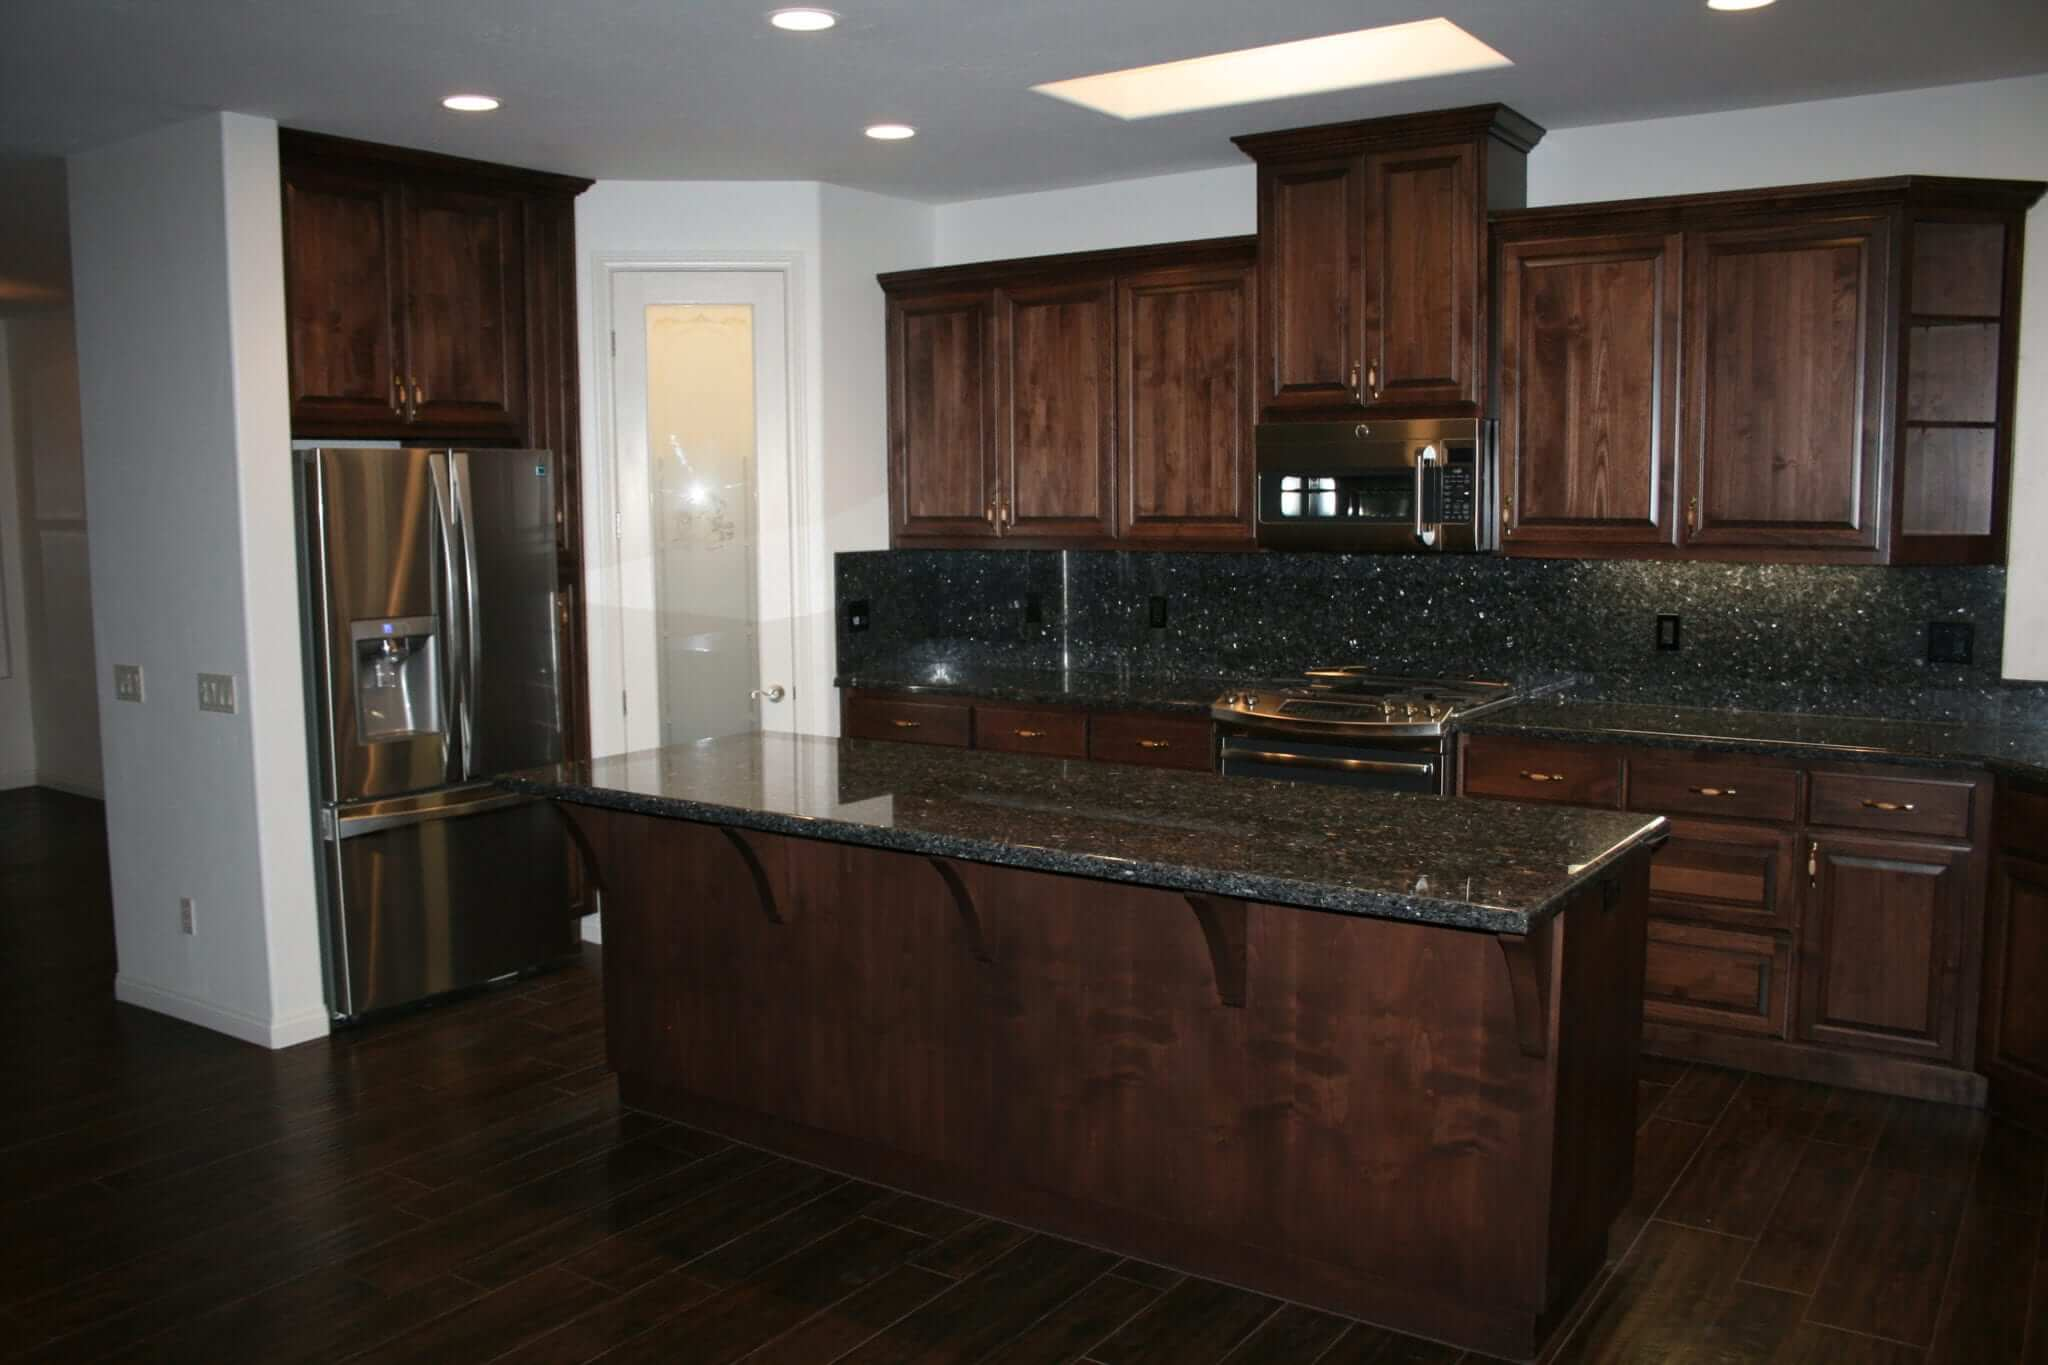 Custom-Whole-House-Remodel-in-Poway-CA-by-Freemans-Construction-Inc